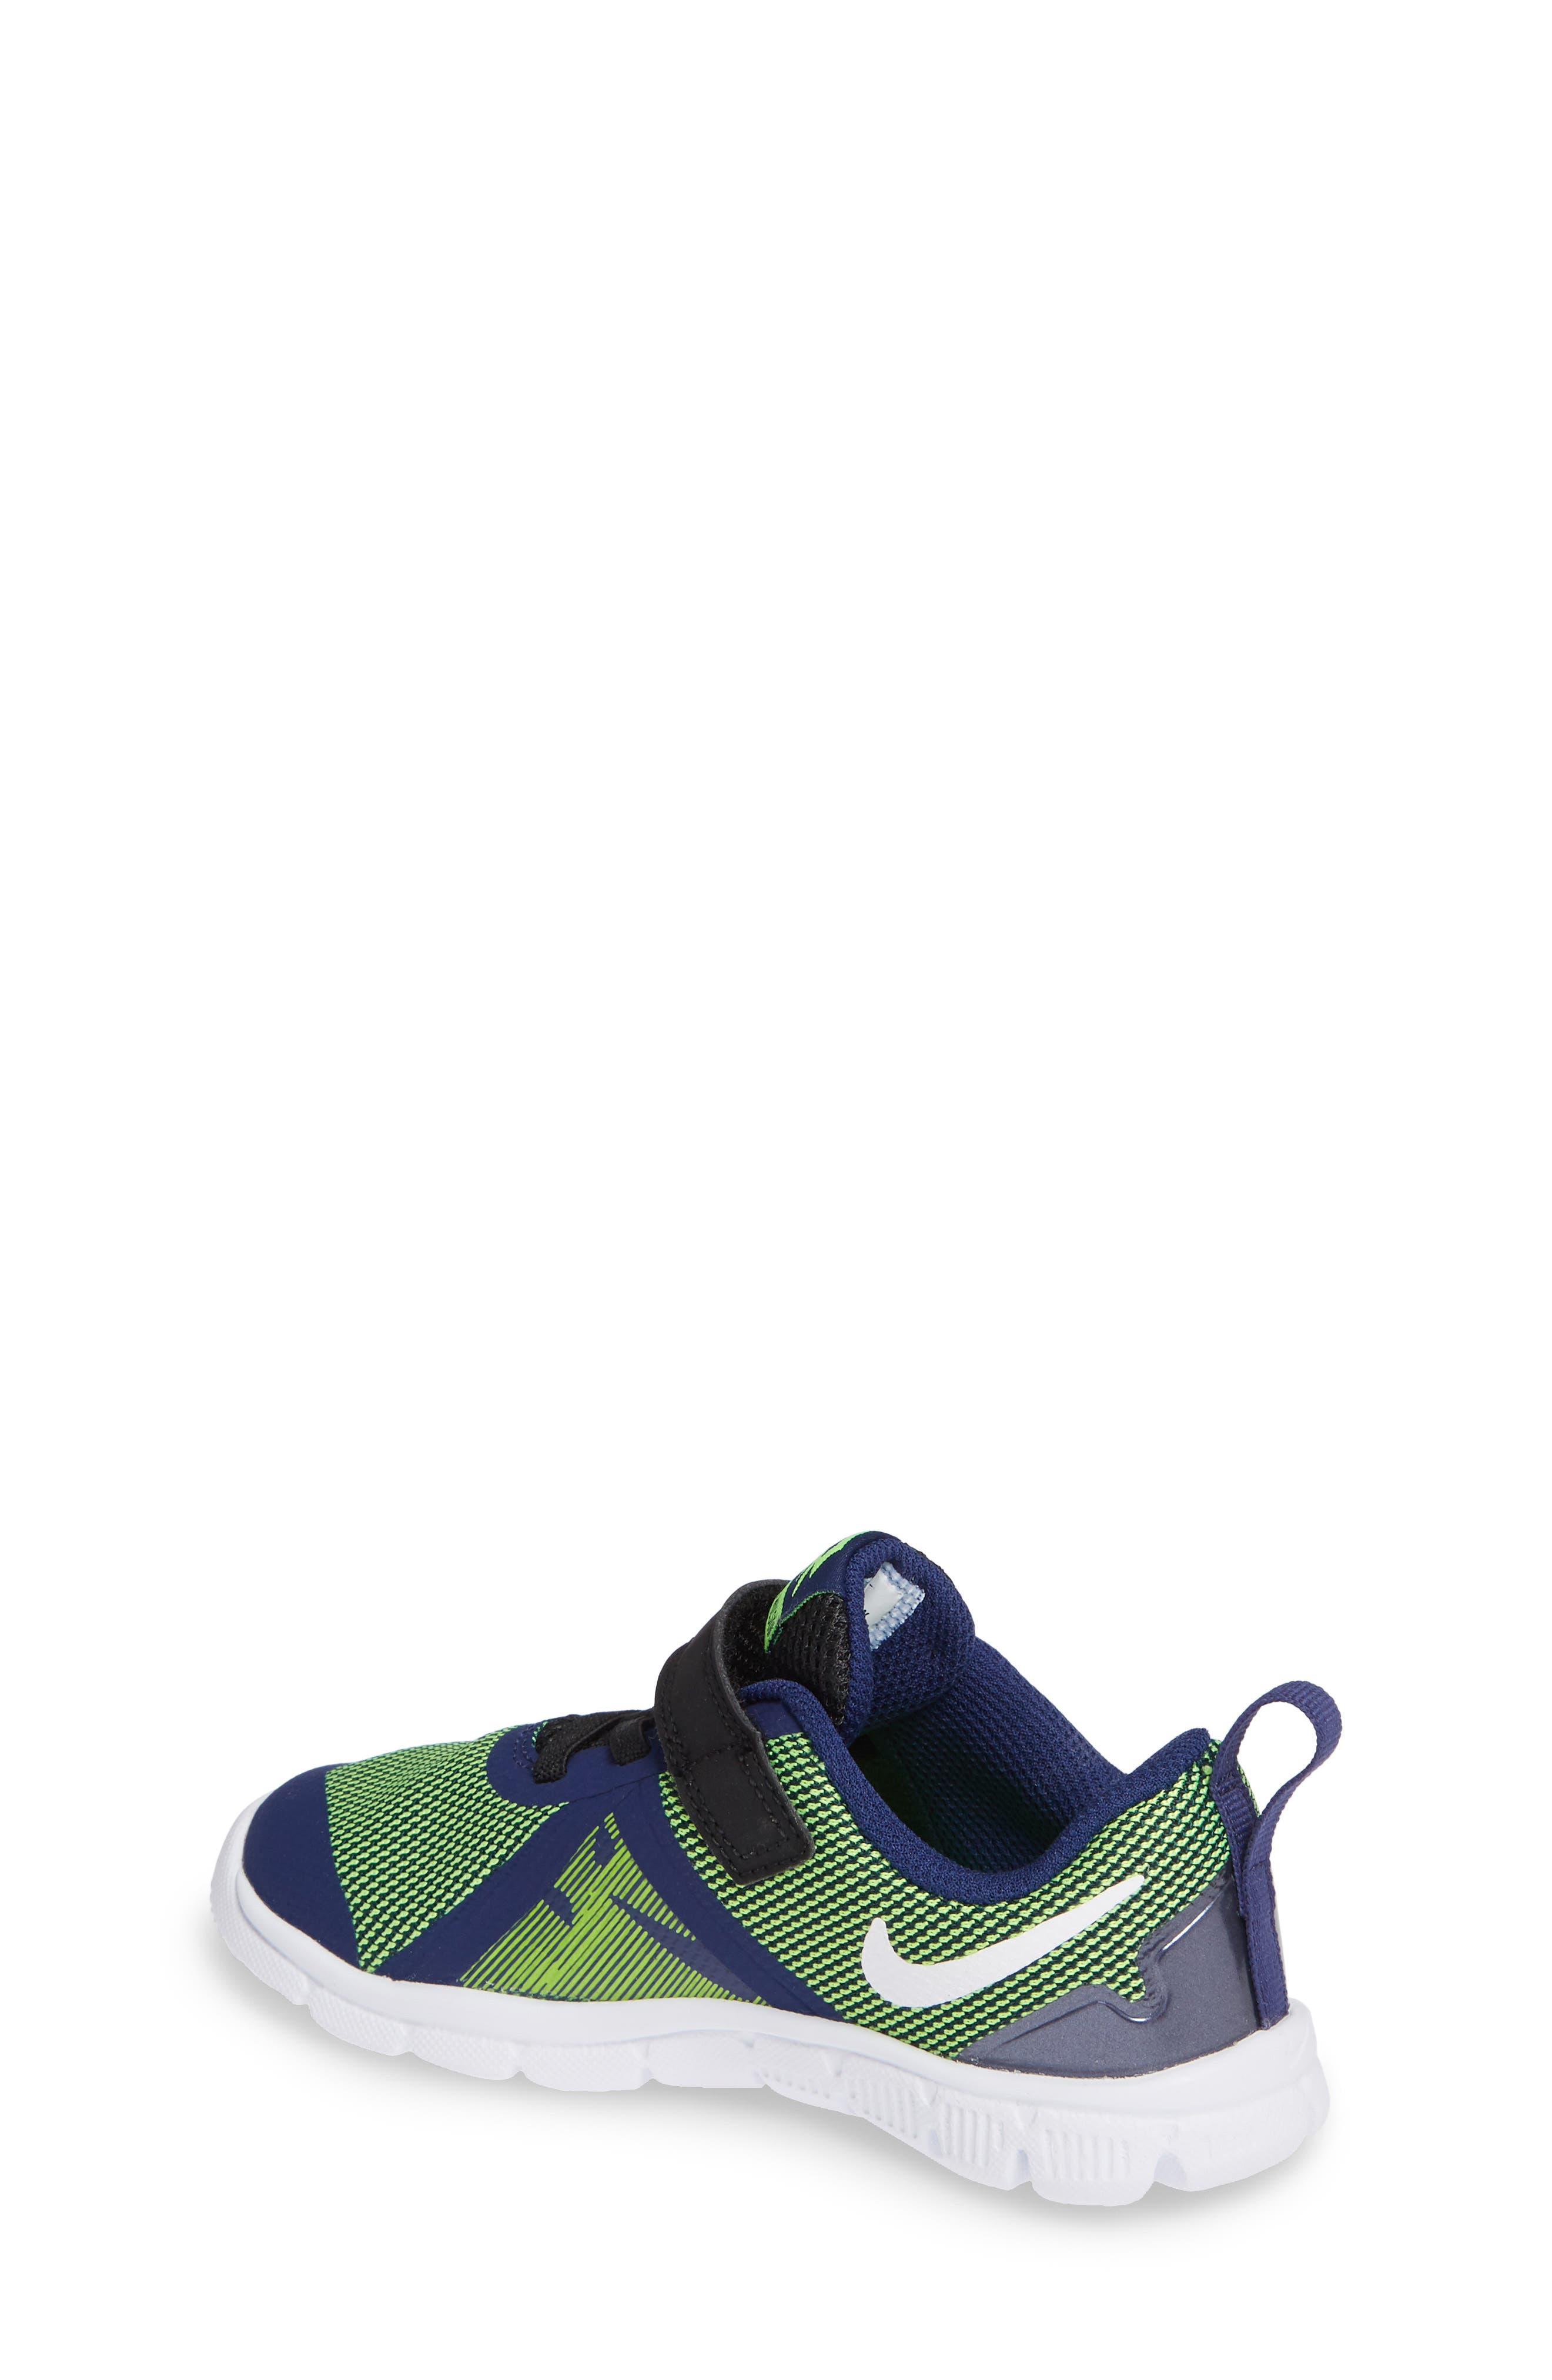 Flex Control II Training Shoe,                             Alternate thumbnail 2, color,                             BLUE/ WHITE/ ELECTRIC GREEN